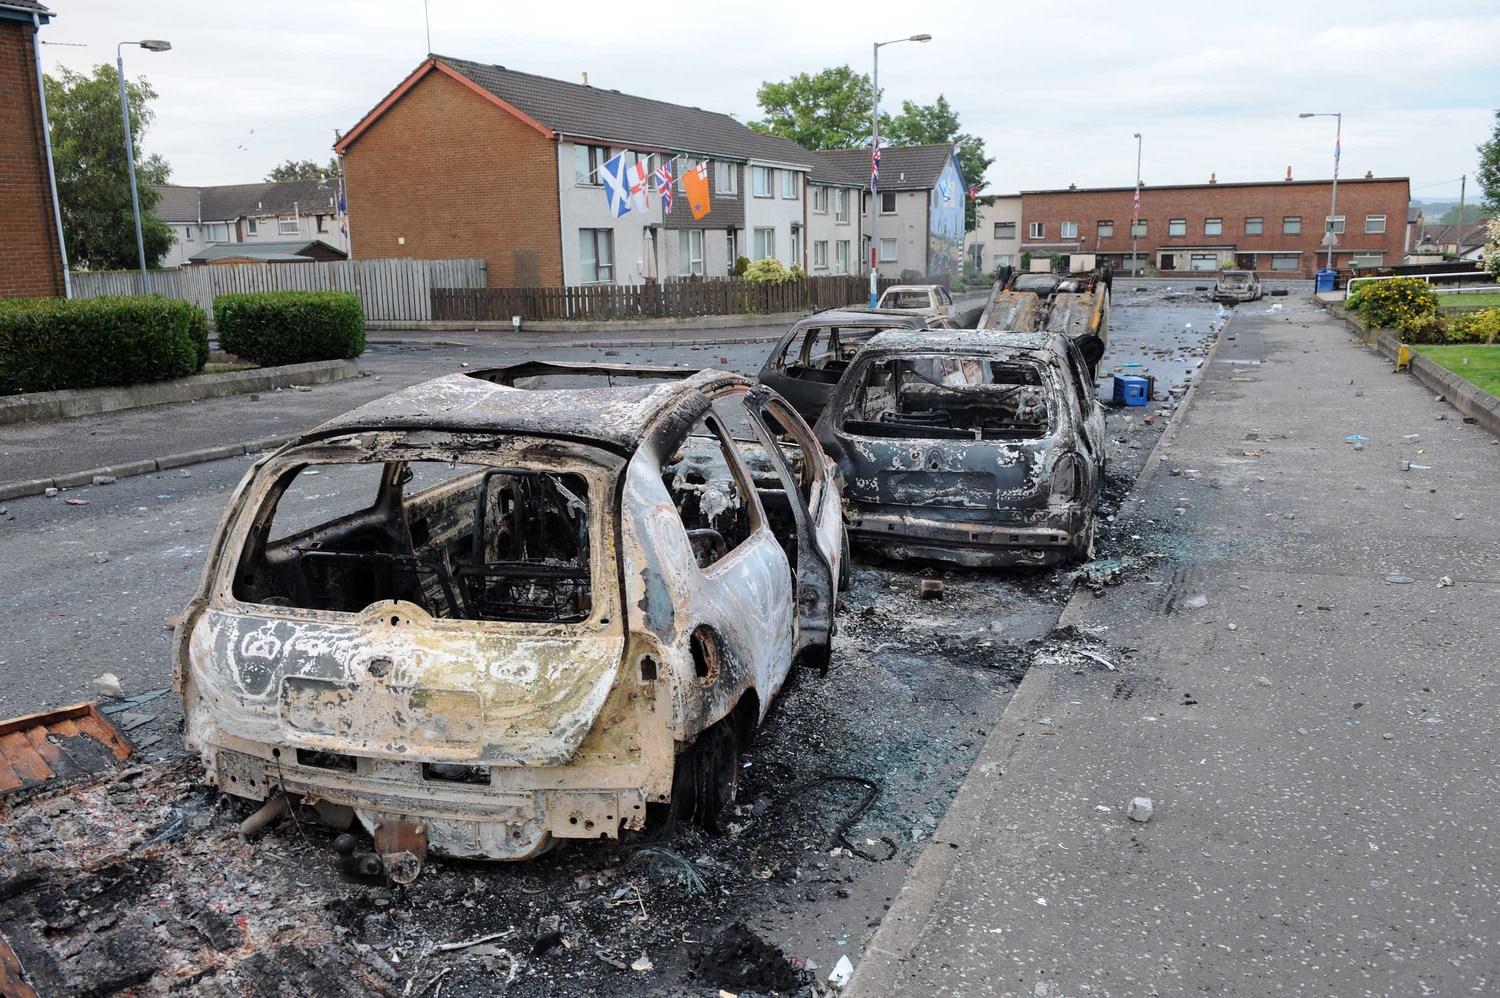 July 2011: Violence erupted in Ballyclare after the removal of flags